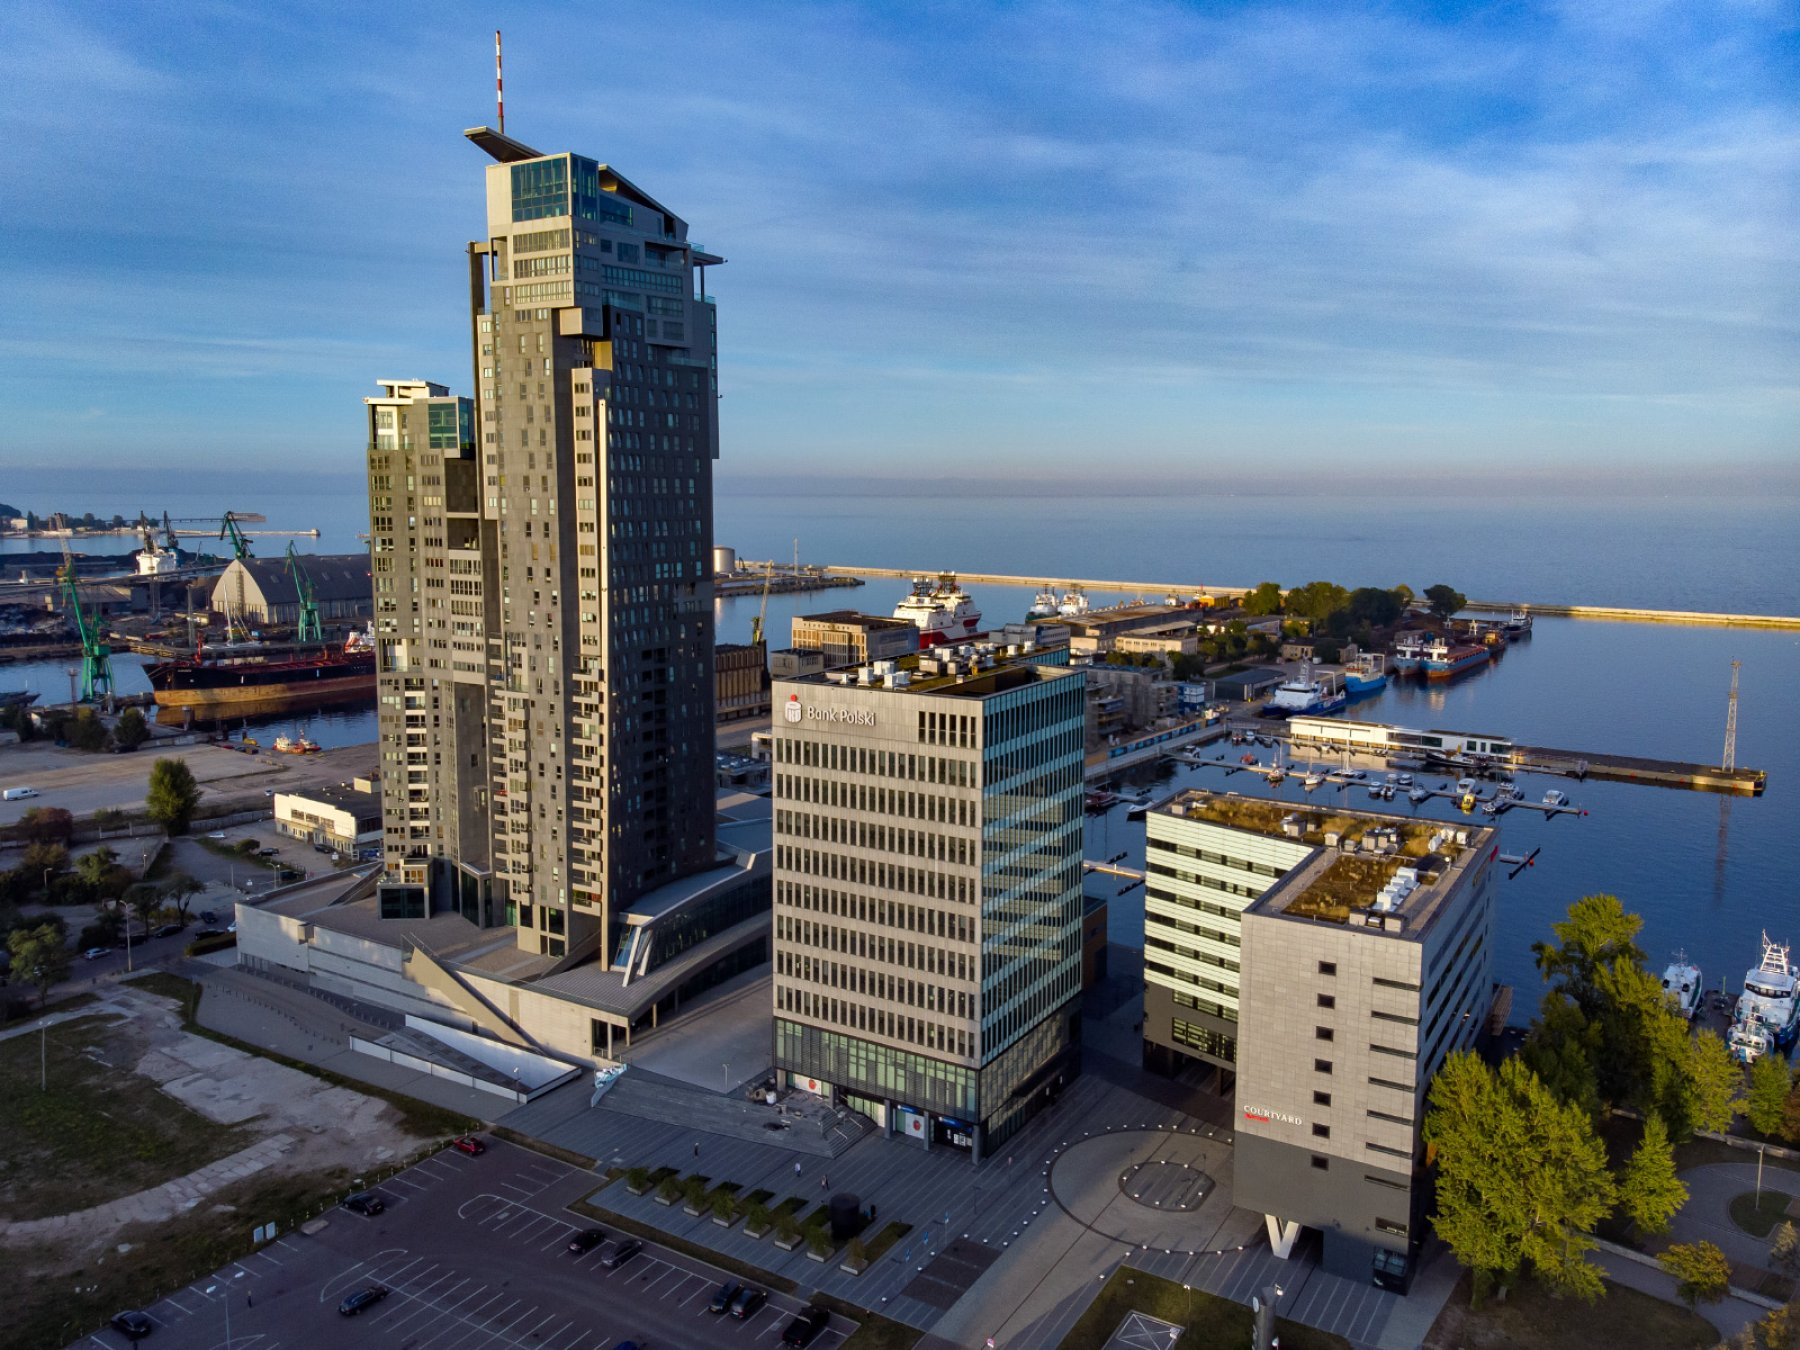 Apartments and office buildings in Gdynia